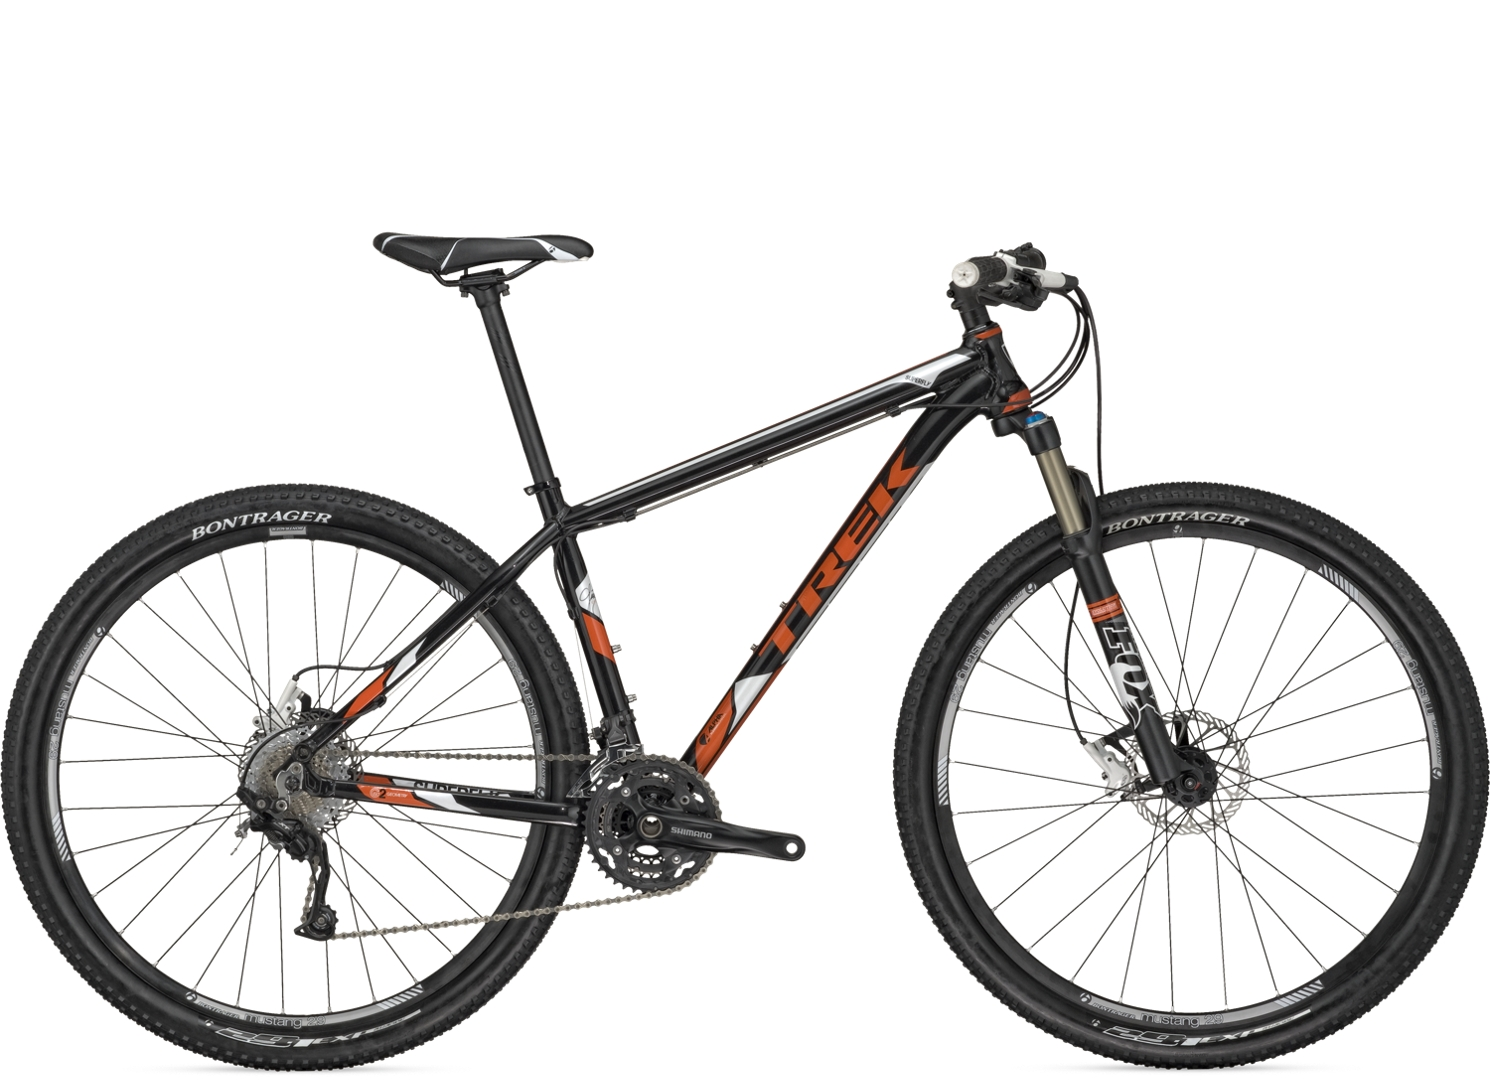 Thinking of getting a MTB: Any recommendations for a good 29er ...